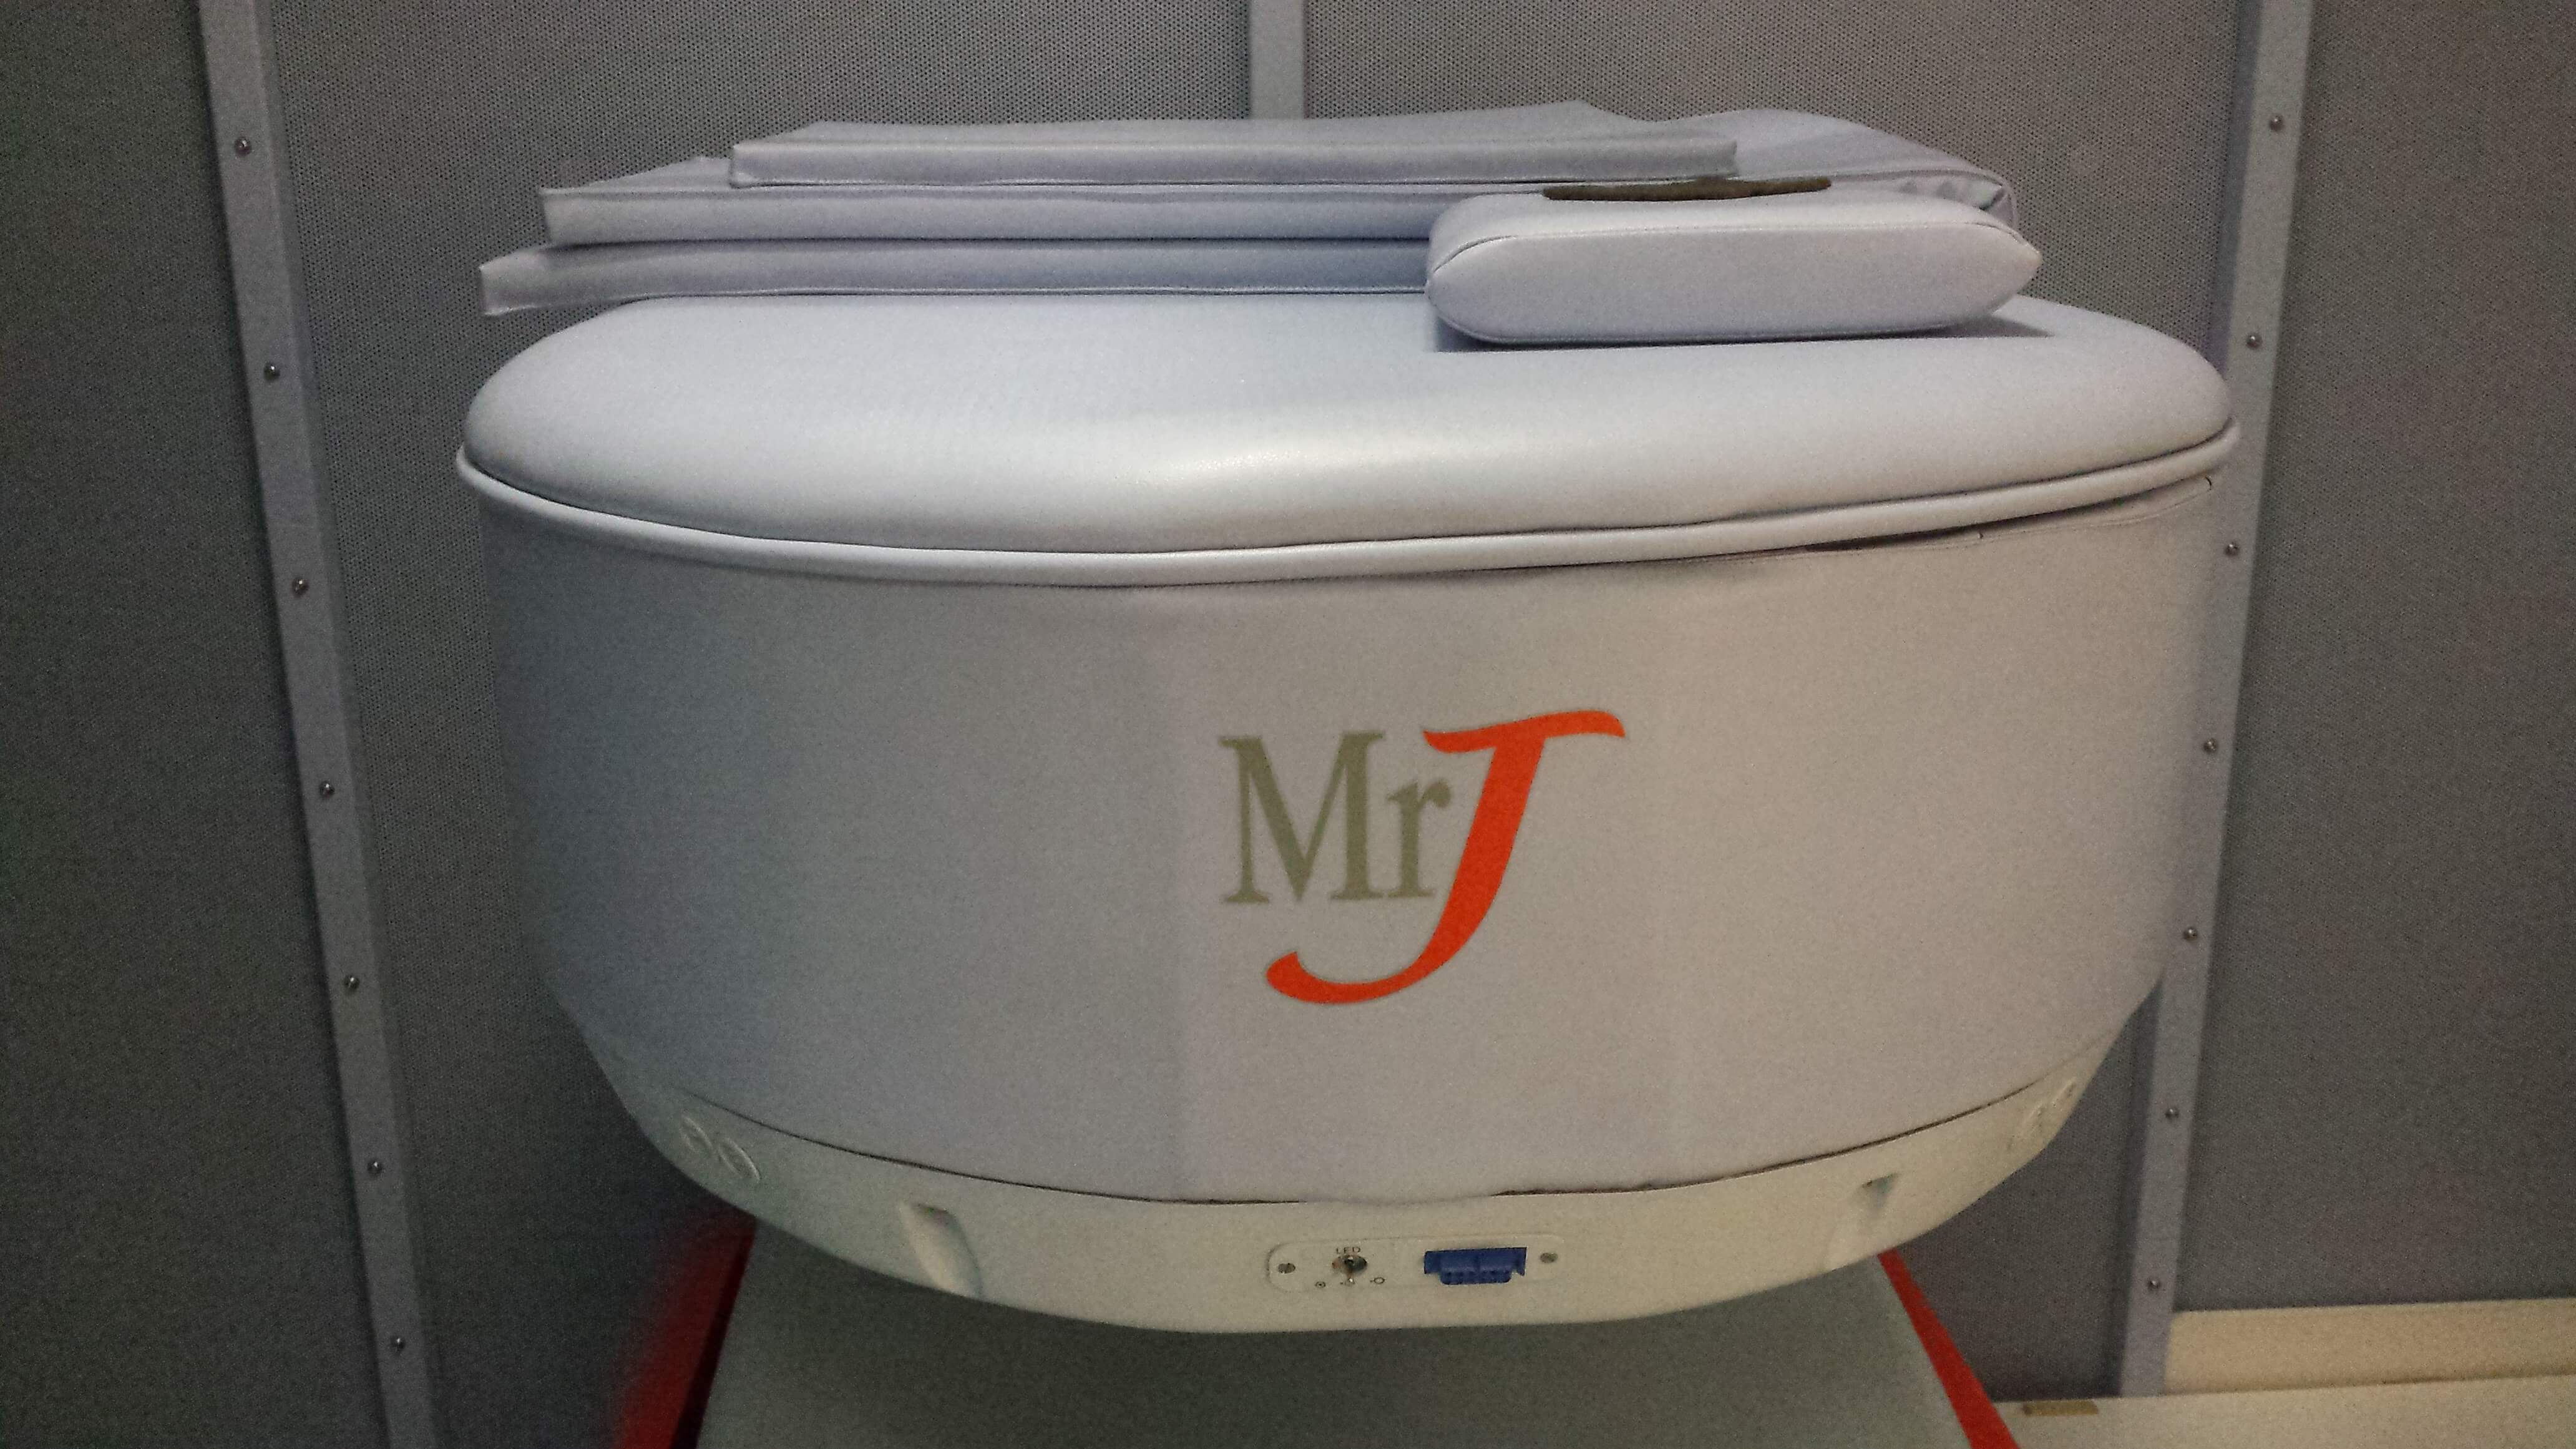 Paramed MRj Magnetic Resonance Imaging